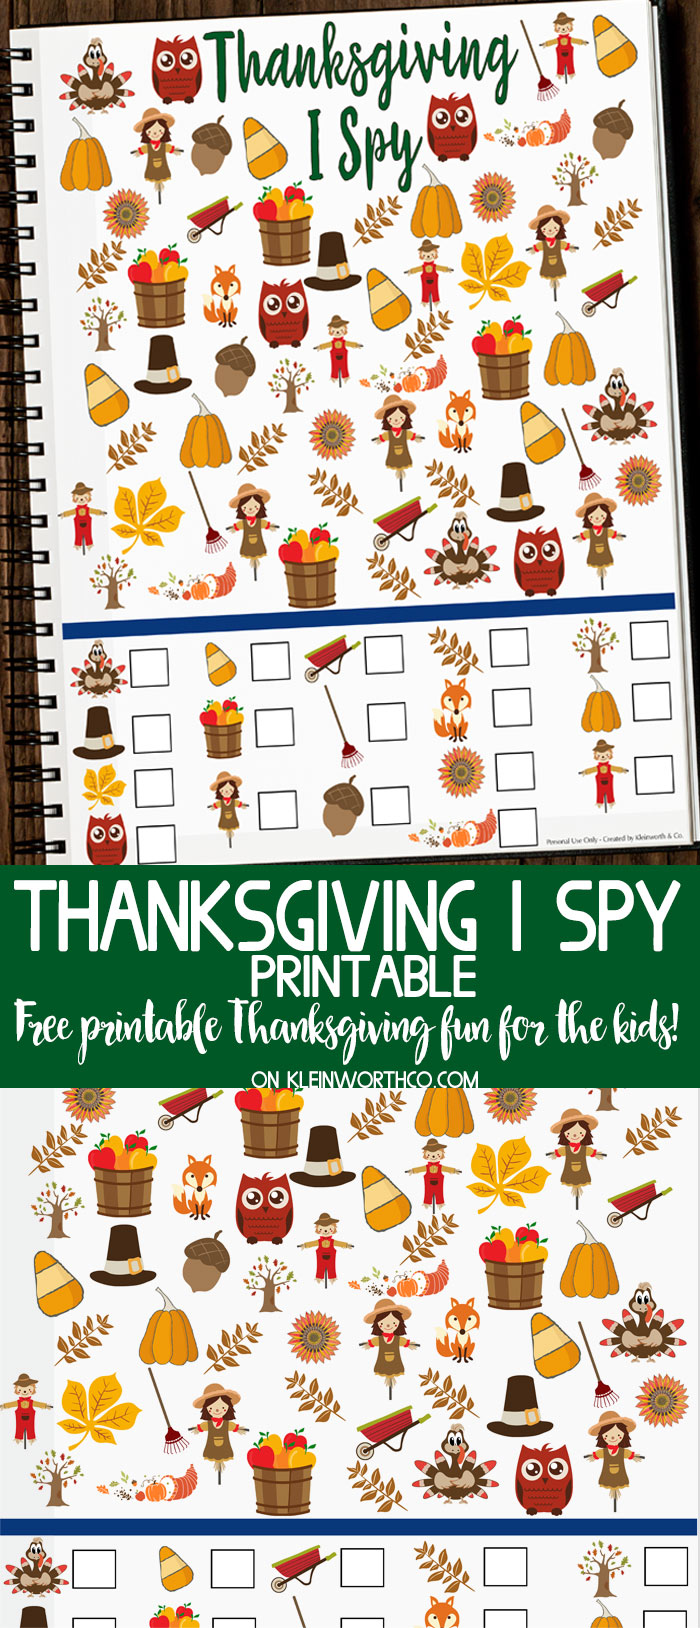 Free Thanksgiving I Spy Printable for kids on Thanksgiving